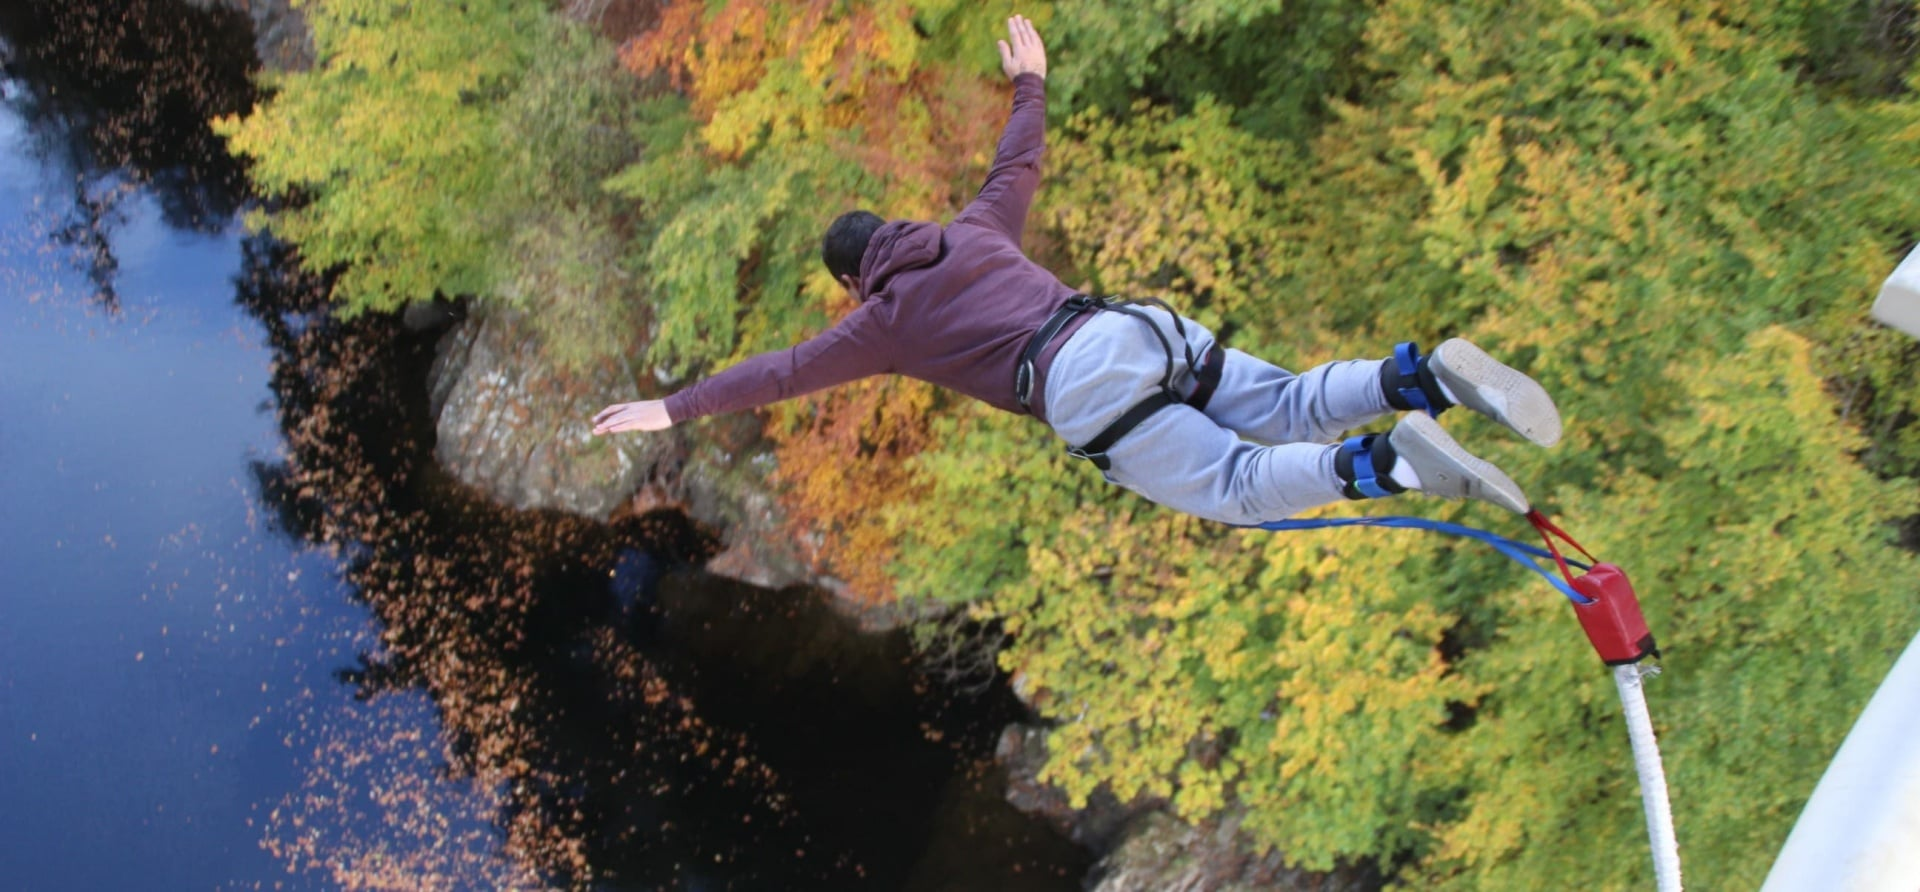 Scotland Bridge Bungee Jump-1